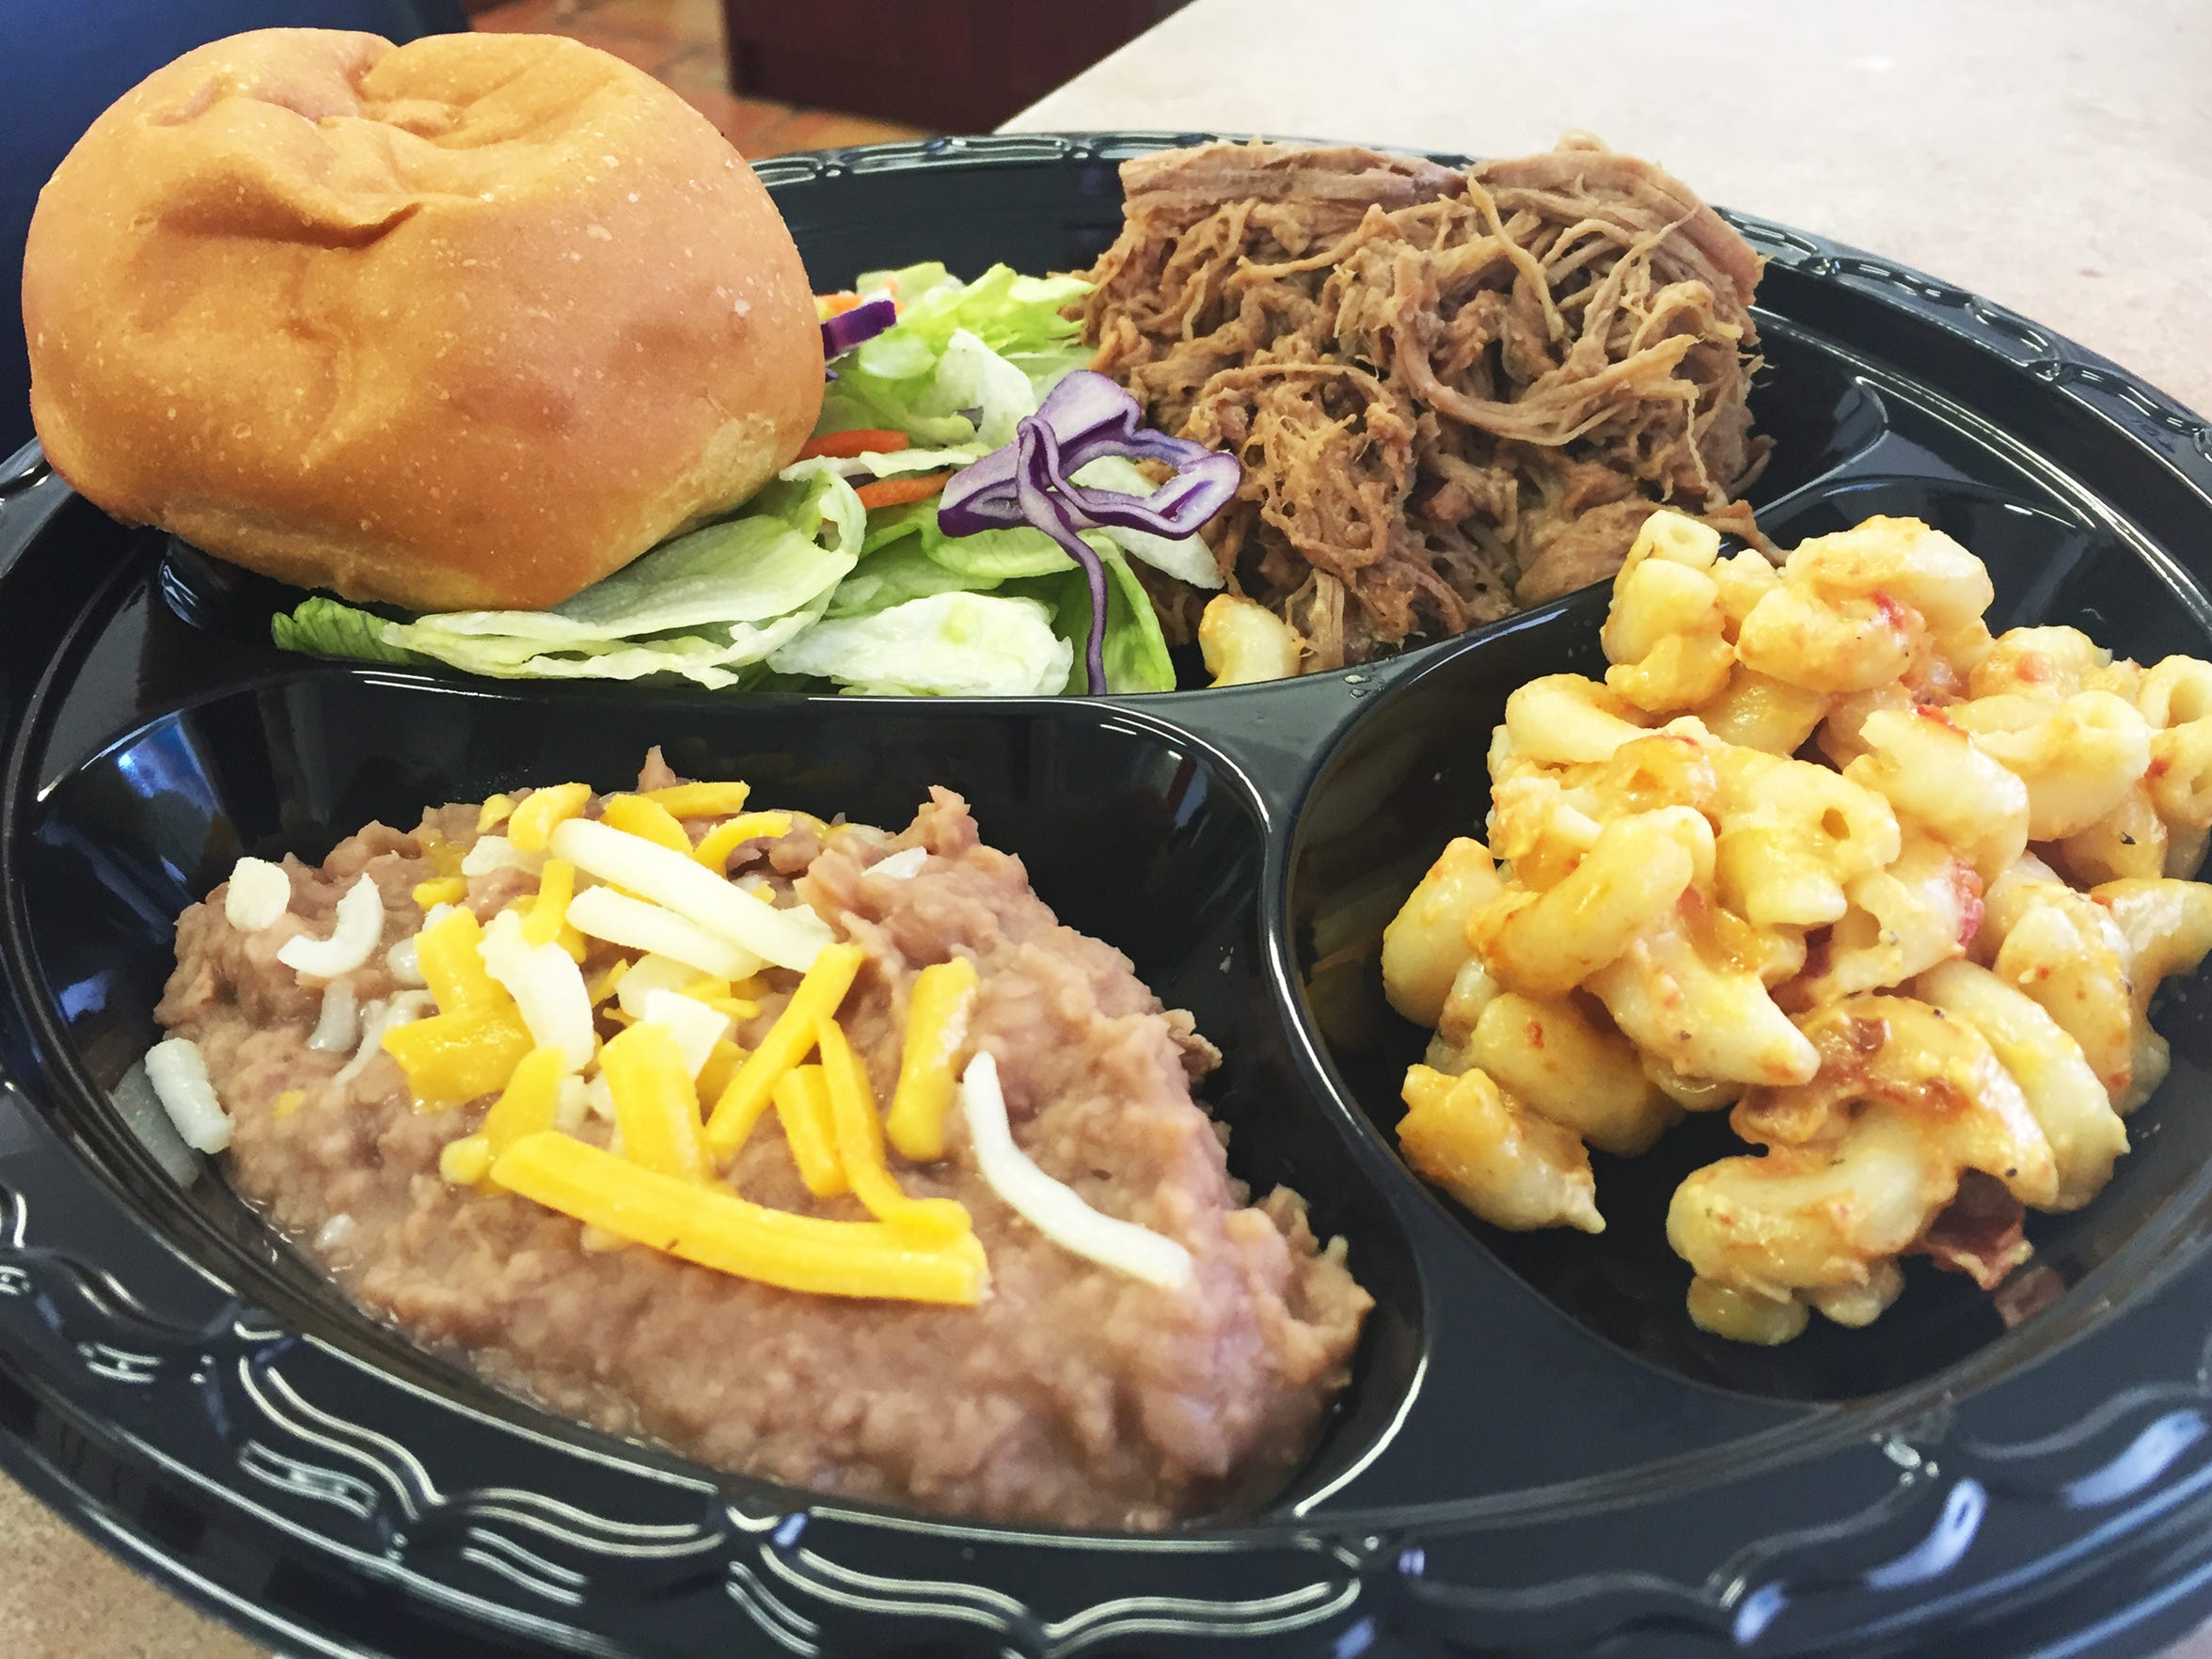 Solo's Grab-n-Go is the newest addition to University Avenue, with a menu that has nothing over $6.